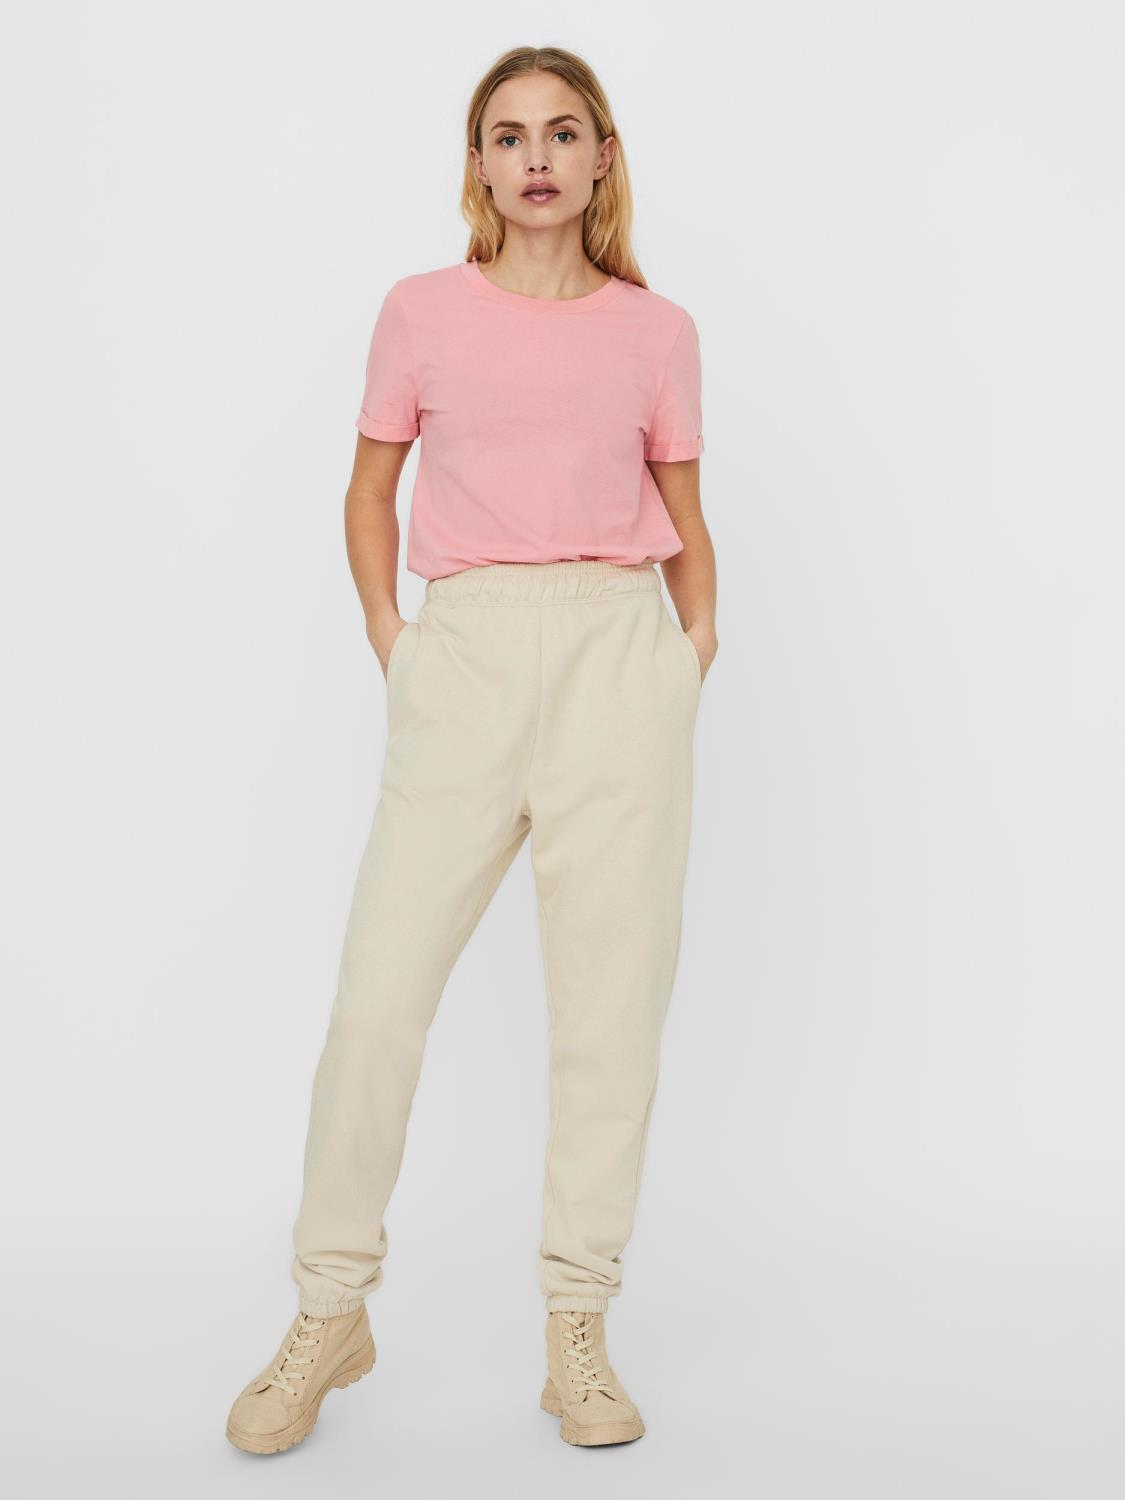 VMODEZ HW SWEAT PANTS Oatmeal